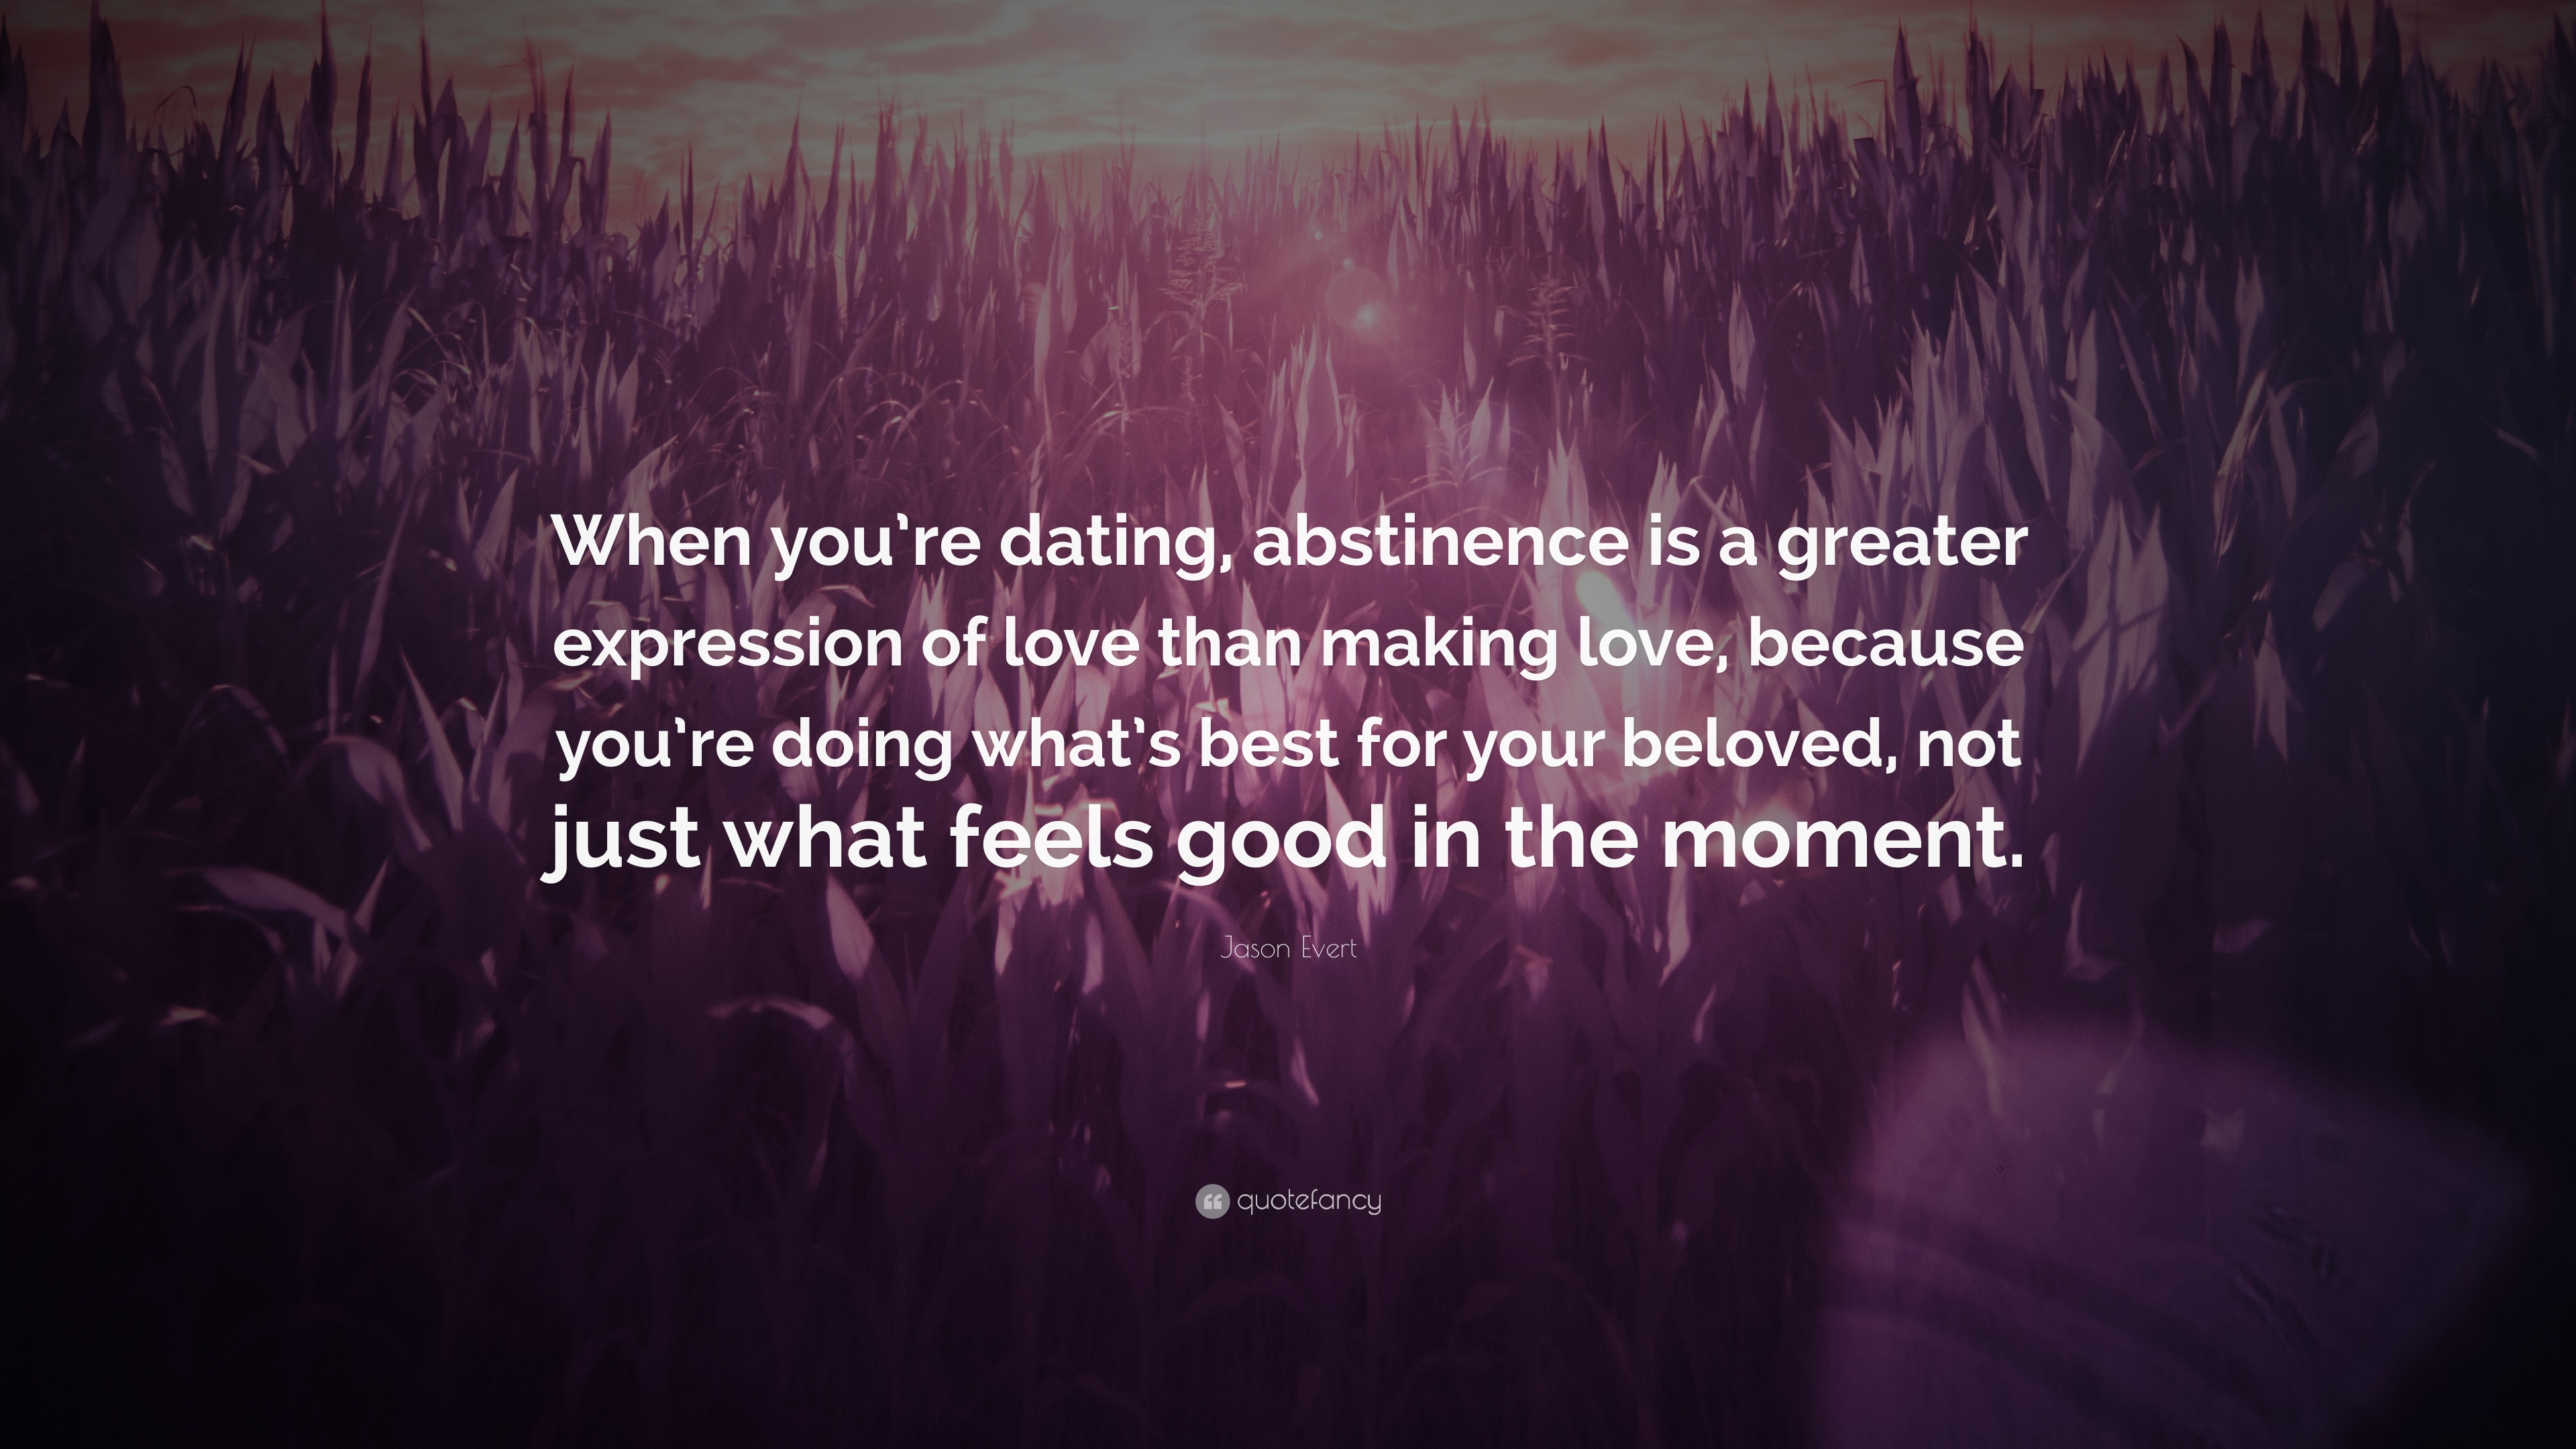 Life-changing acquaintances on abstinence dating site